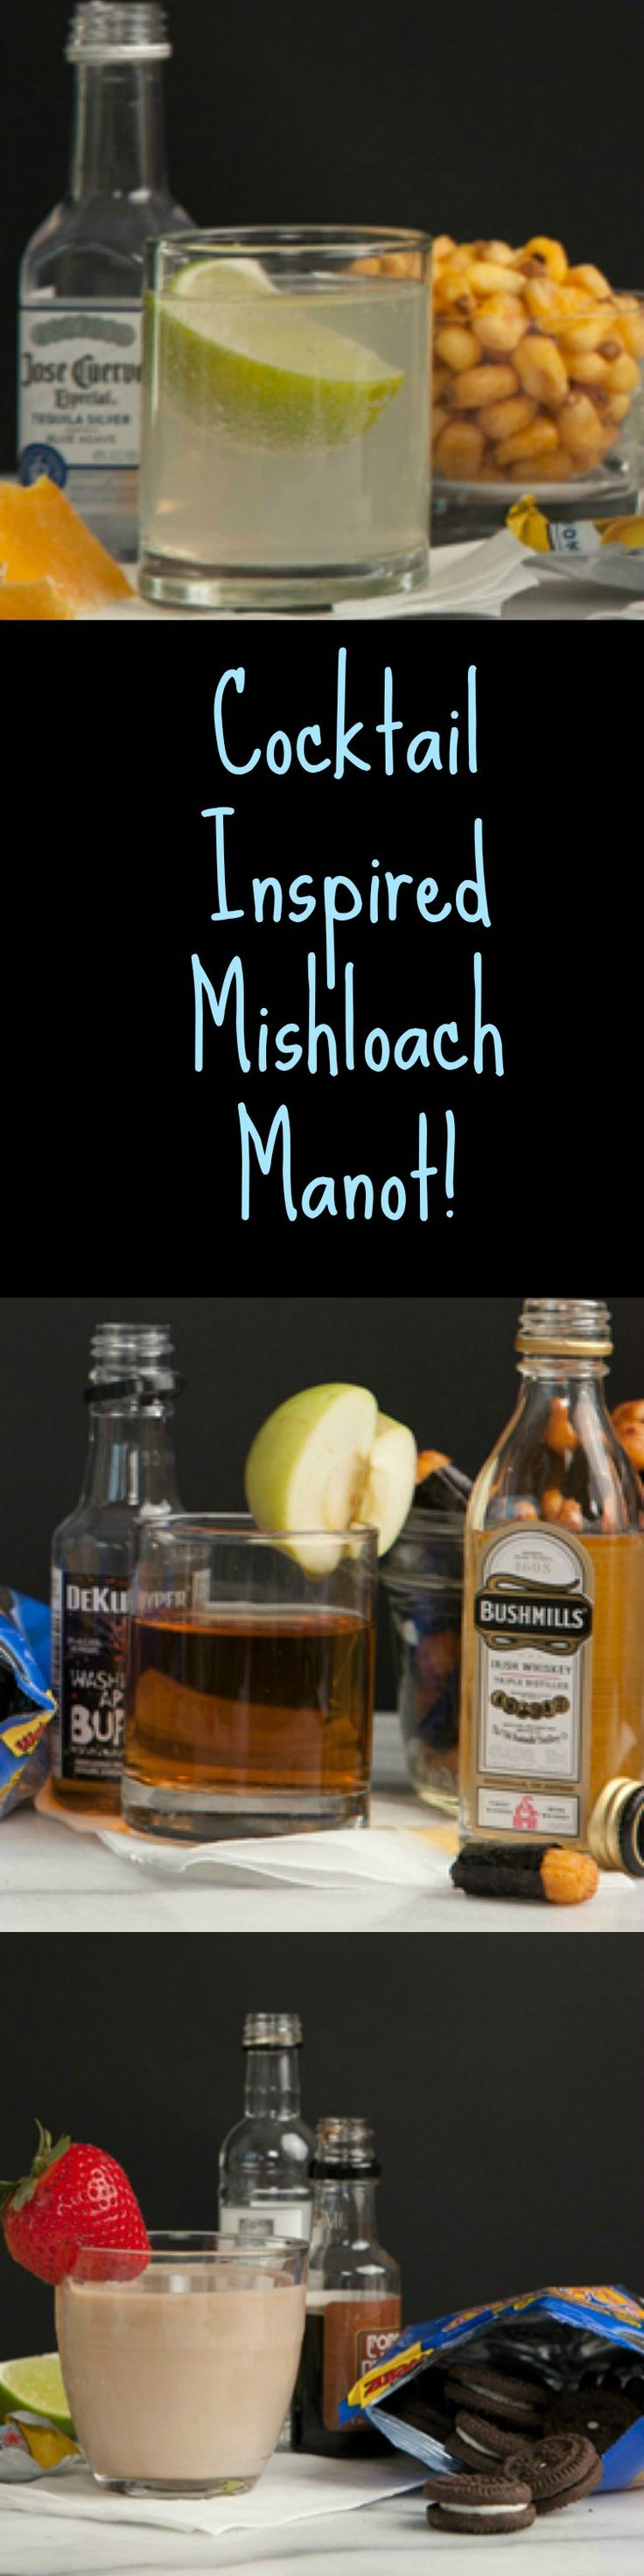 Cocktail Inspired Mishloach Manot!